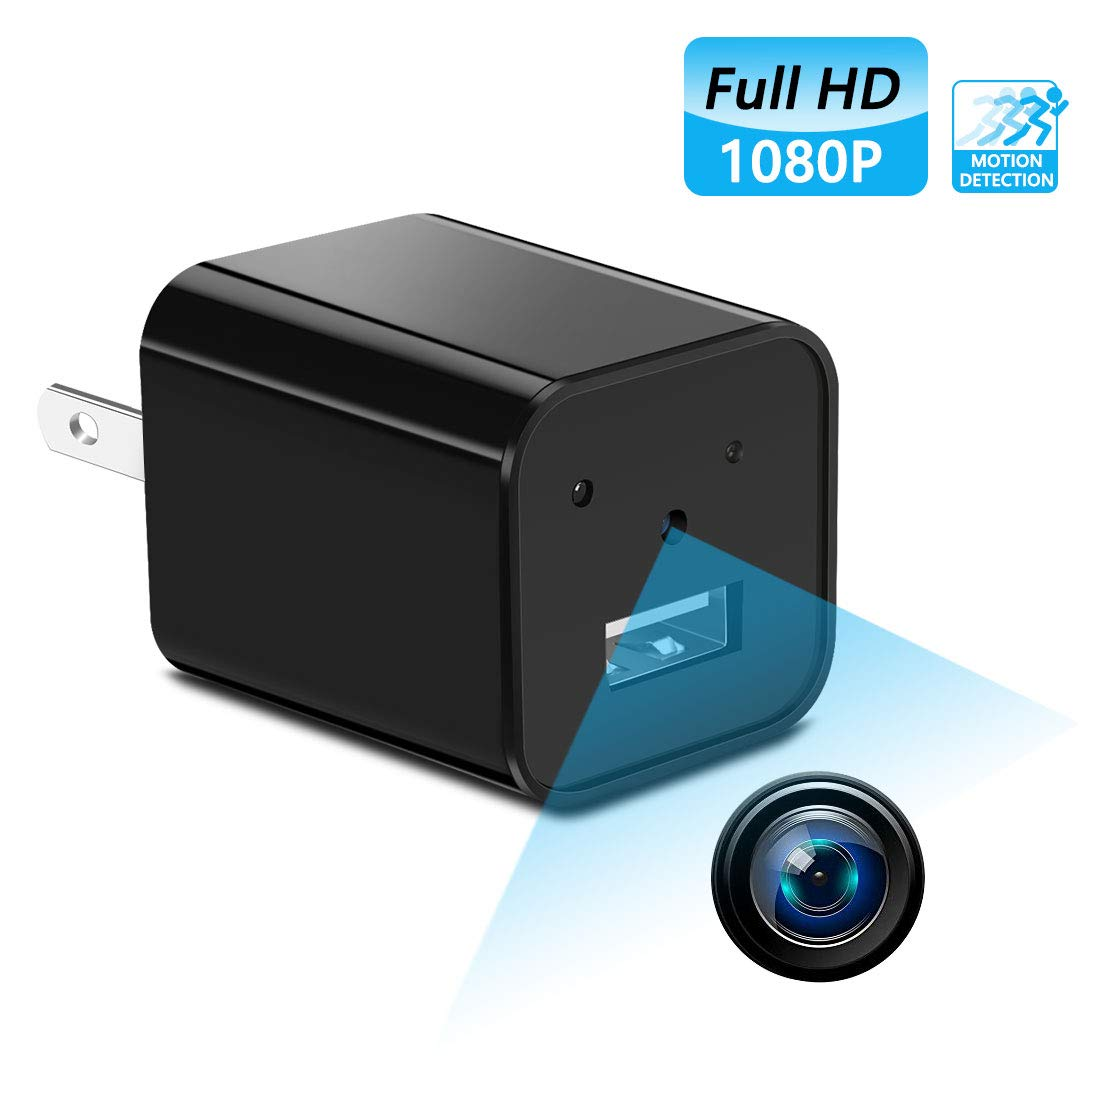 Mini Hidden spy Camera,Full HD 1080P Hidden spy Camera Charger with Video Record and Motion Detection for Home,Office Use No Wi-Fi Needed